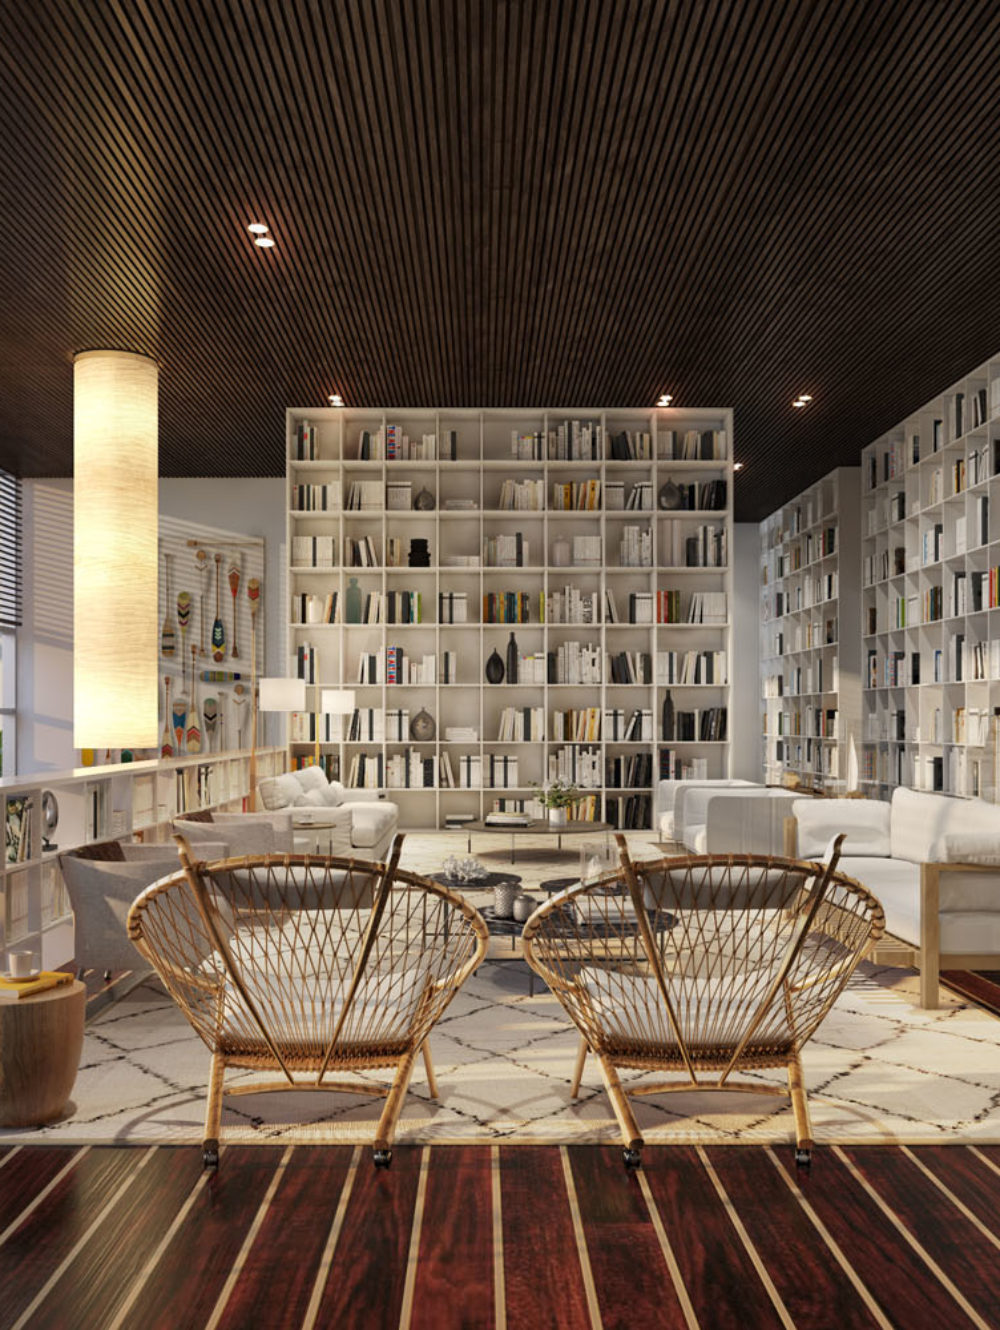 Miamicondosforsale_MonacoYachtClub_Interior_Lobby_Library_Amenities_Waterfront_PieroLissoni